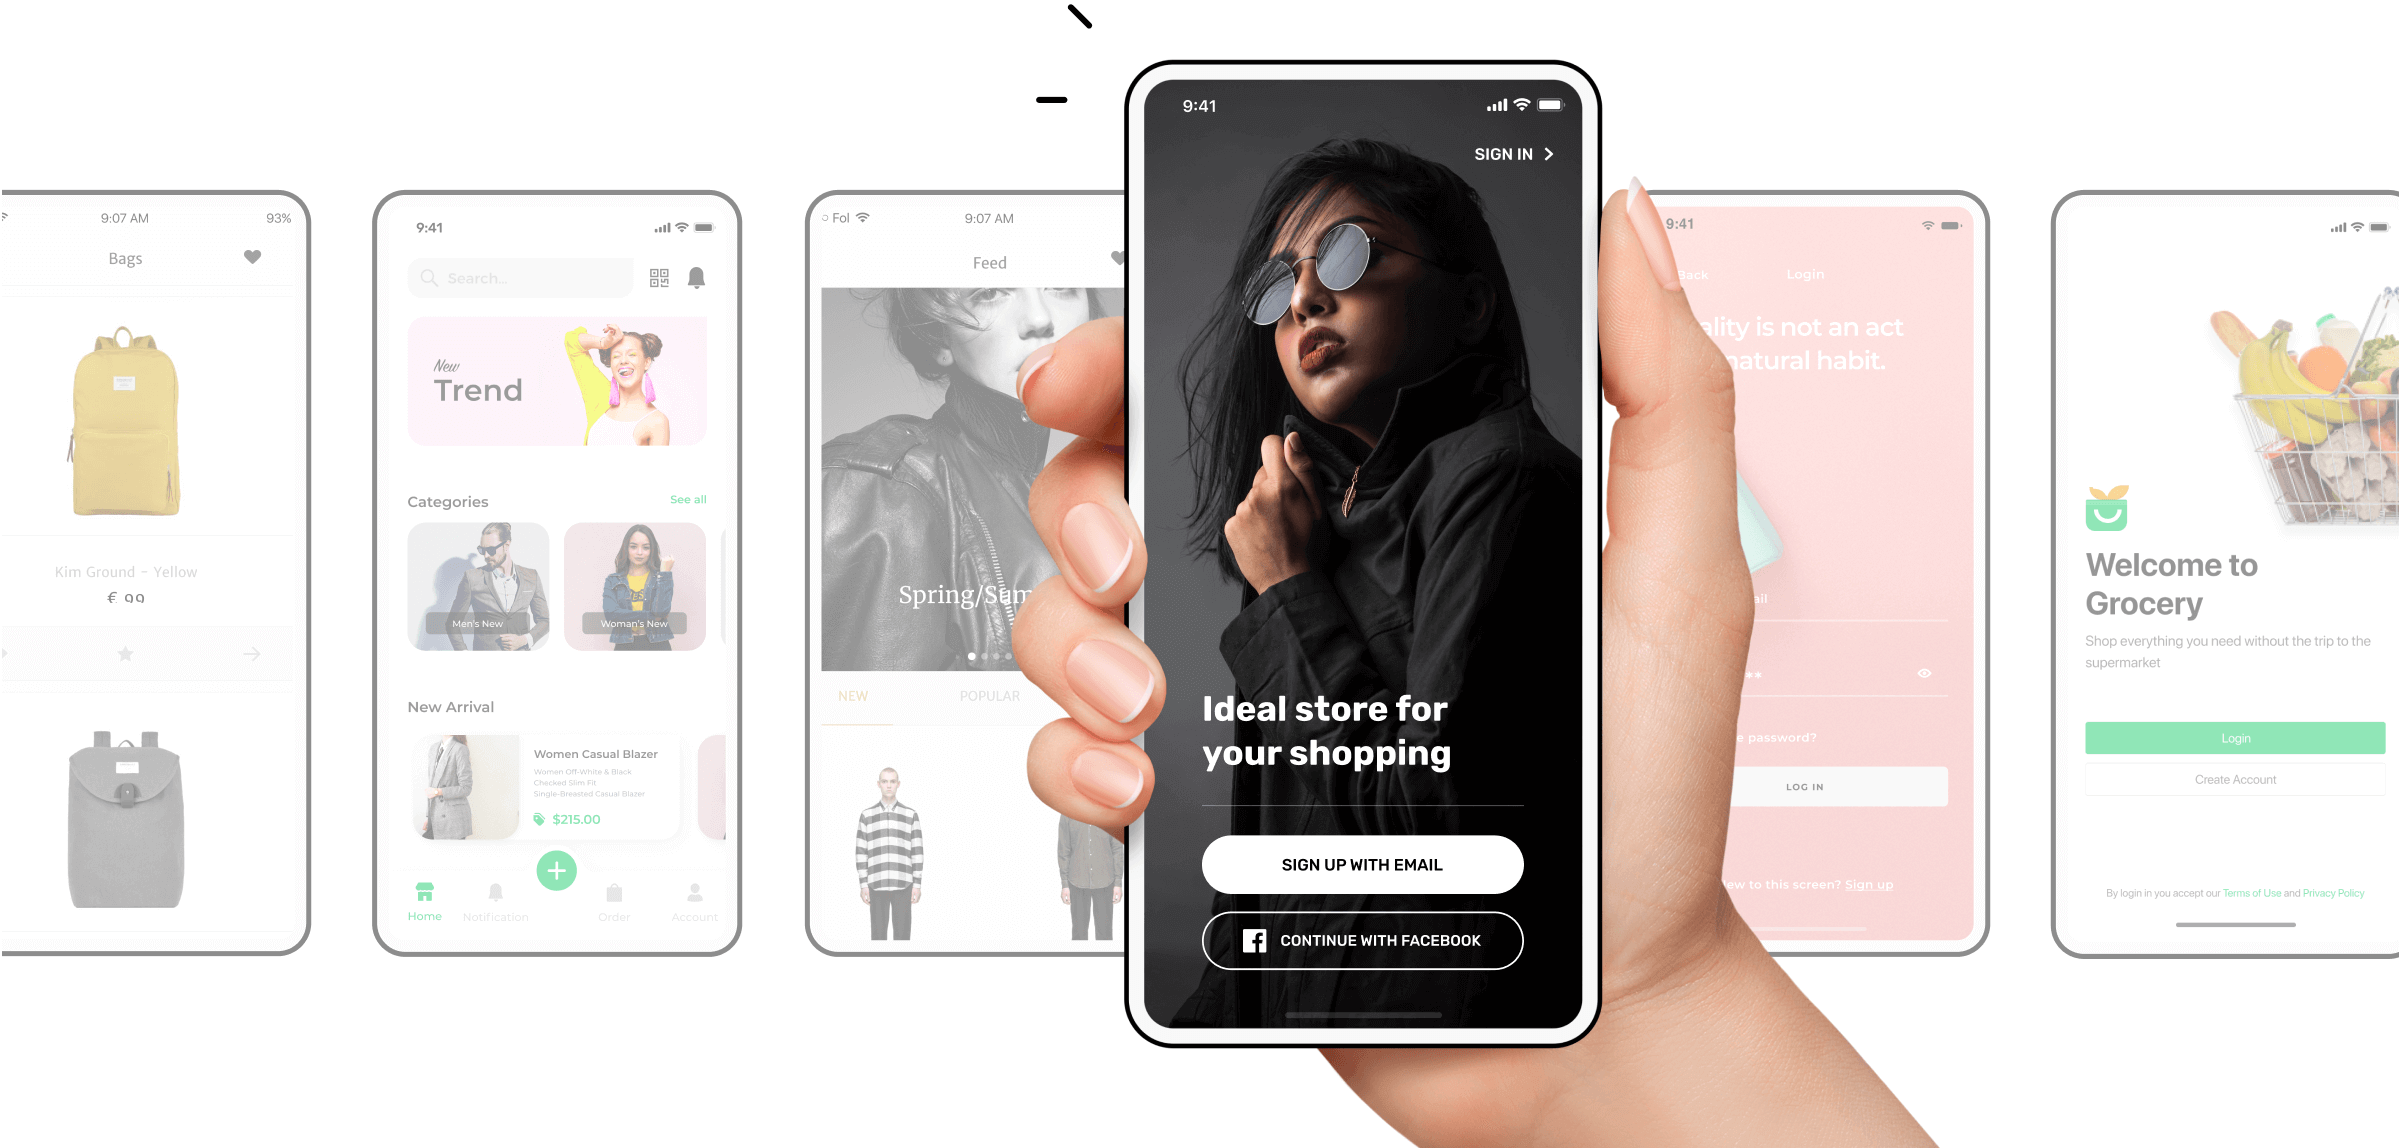 How to build an ecommerce app from scratch